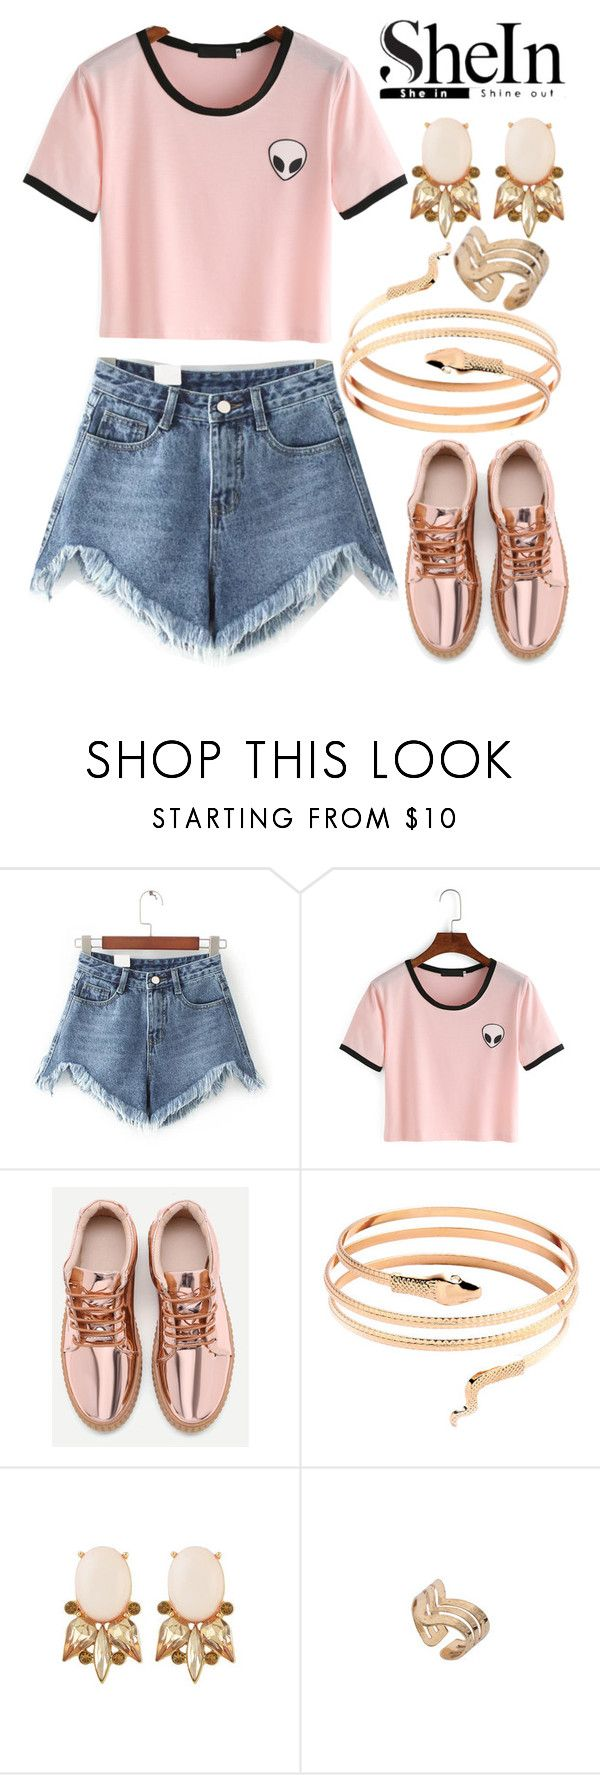 """SheIn"" by deedee-pekarik ❤ liked on Polyvore featuring shorts, denimshorts and shein"